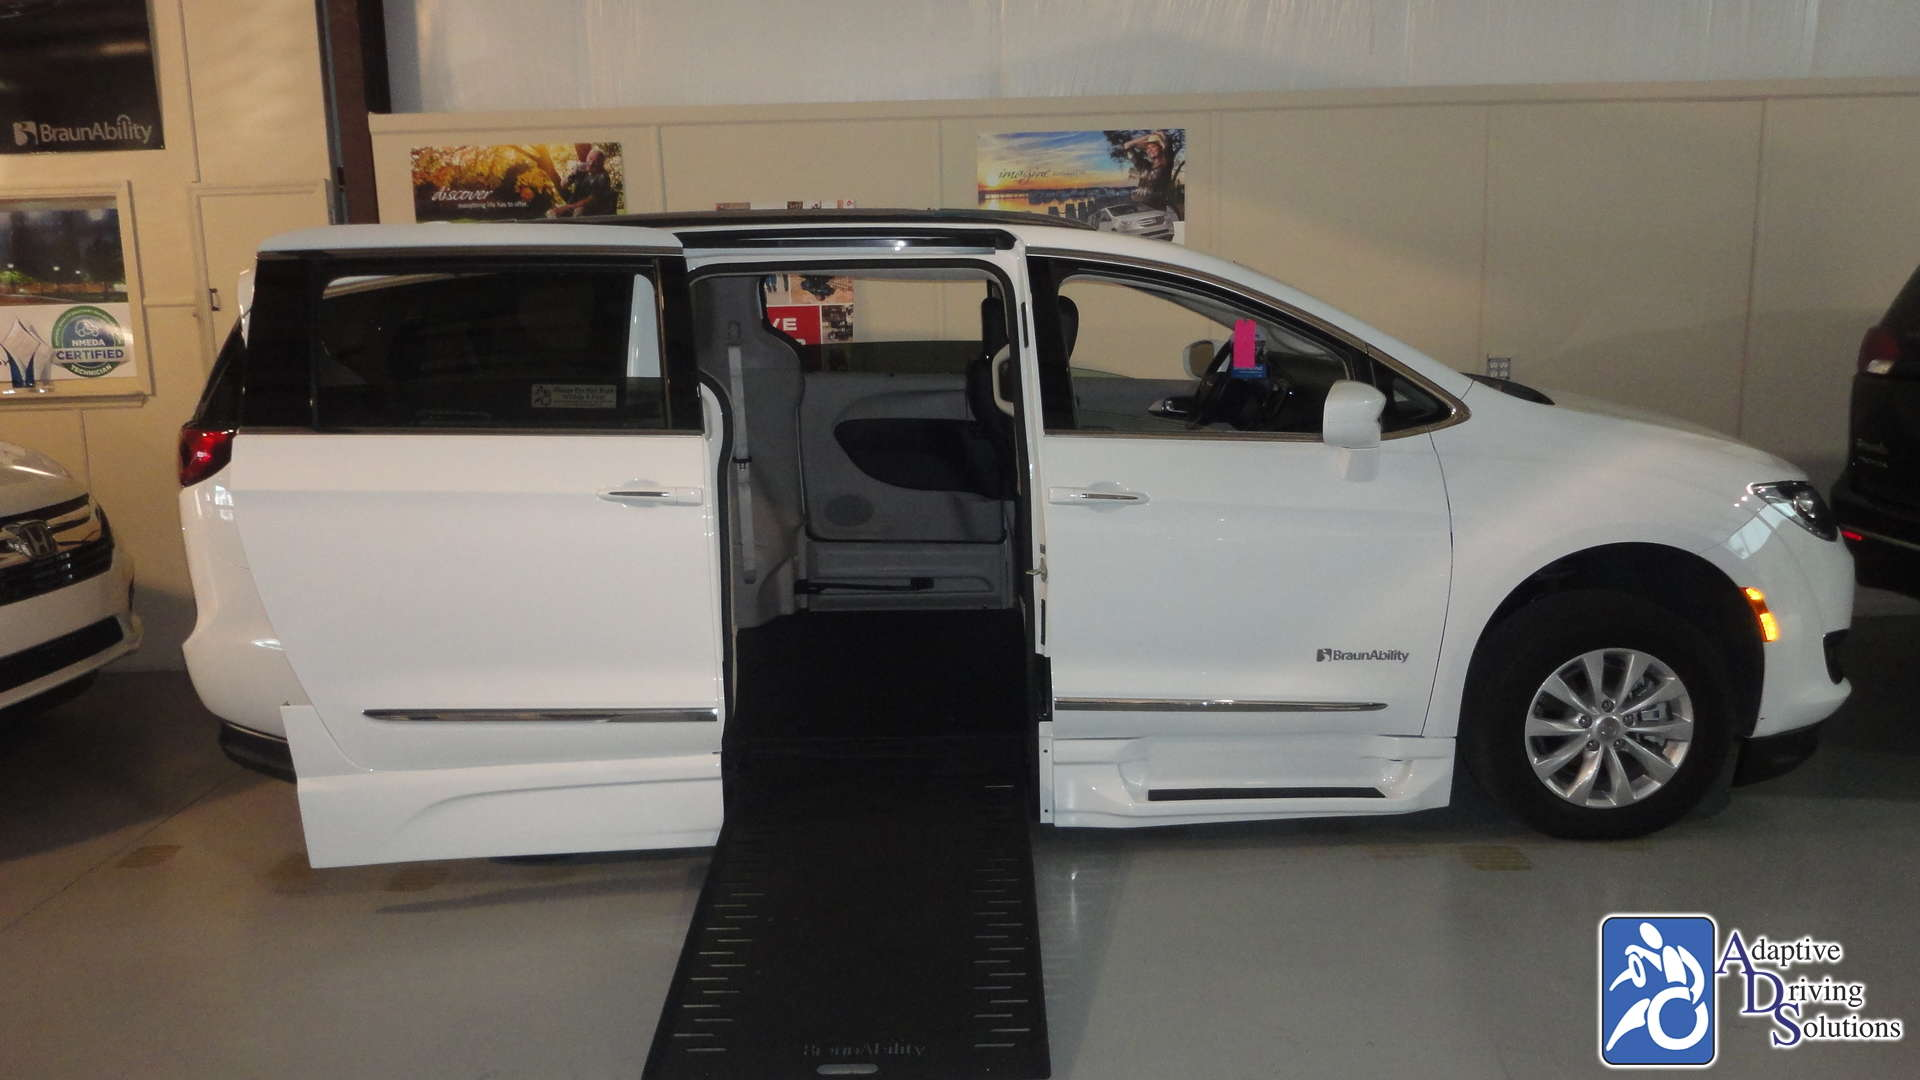 Adaptive Driving Solutions BraunAbility Chrysler Entervan Xi Infloor  Gallery Image